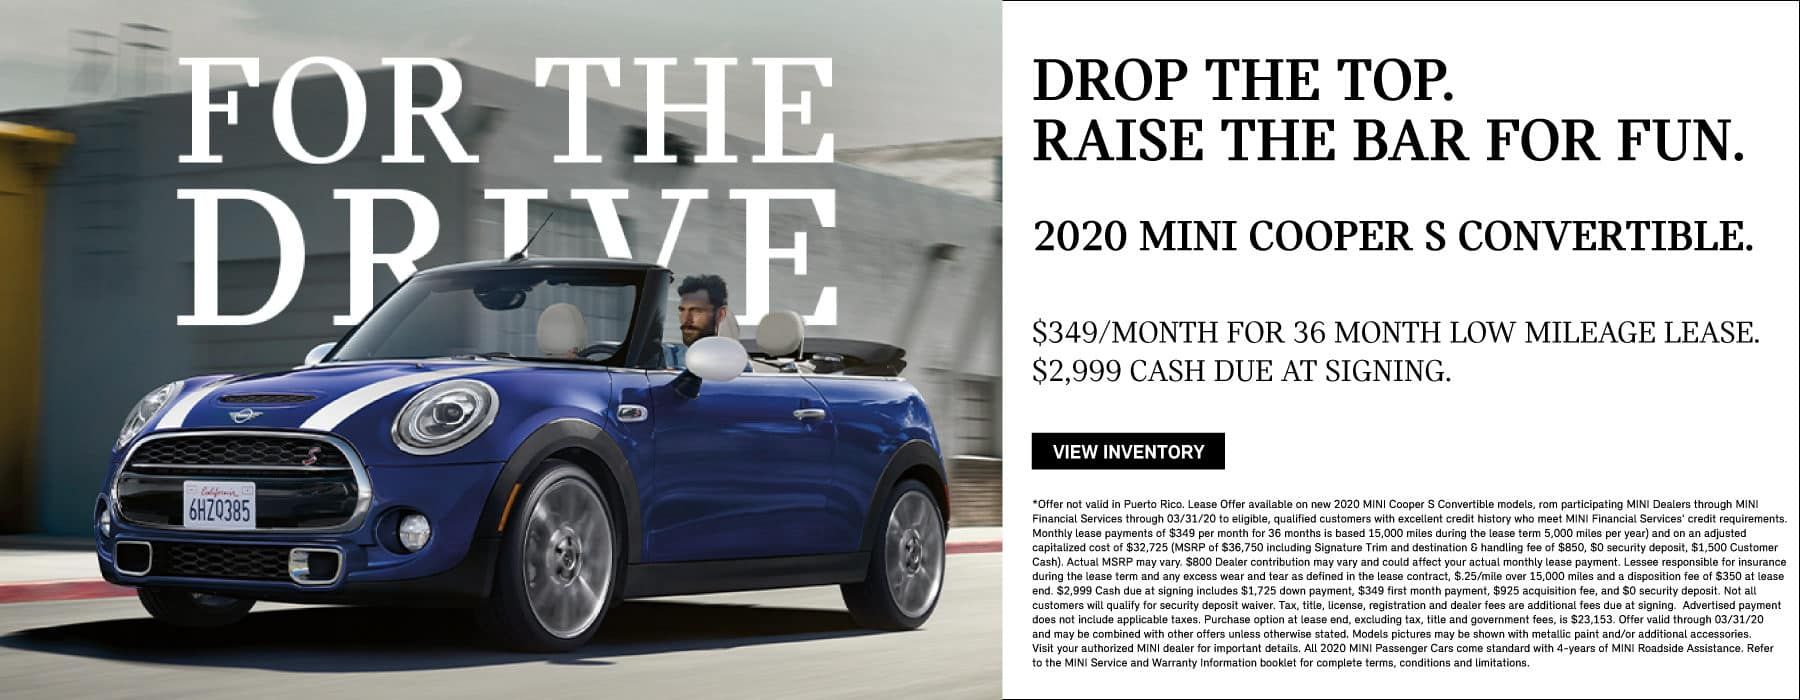 DROP THE TOP. RAISE THE BAR FOR FUN. 2020 MINI Cooper S Convertible. $349/month for 36 month low mileage lease. $2,999 cash due at signing. Click to view inventory.